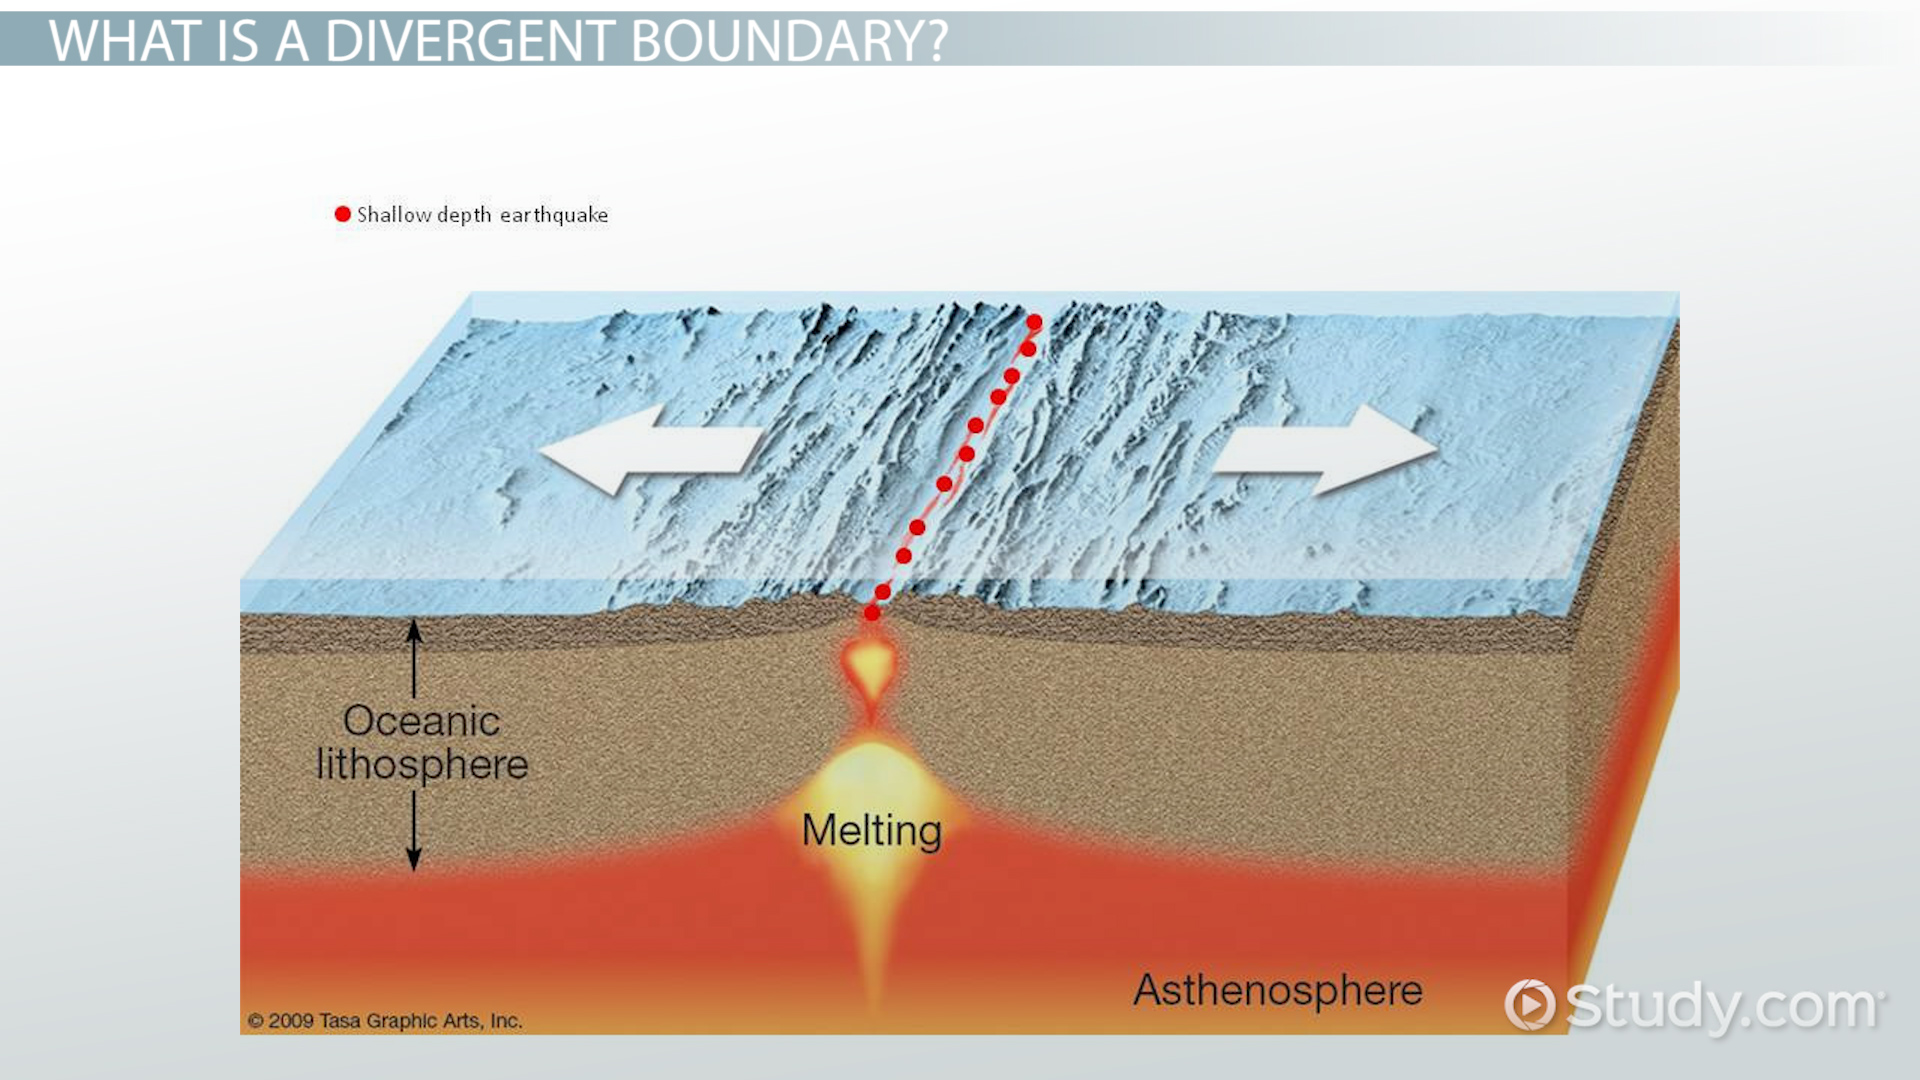 north american plate tectonics movement facts video lesson divergent boundary definition examples